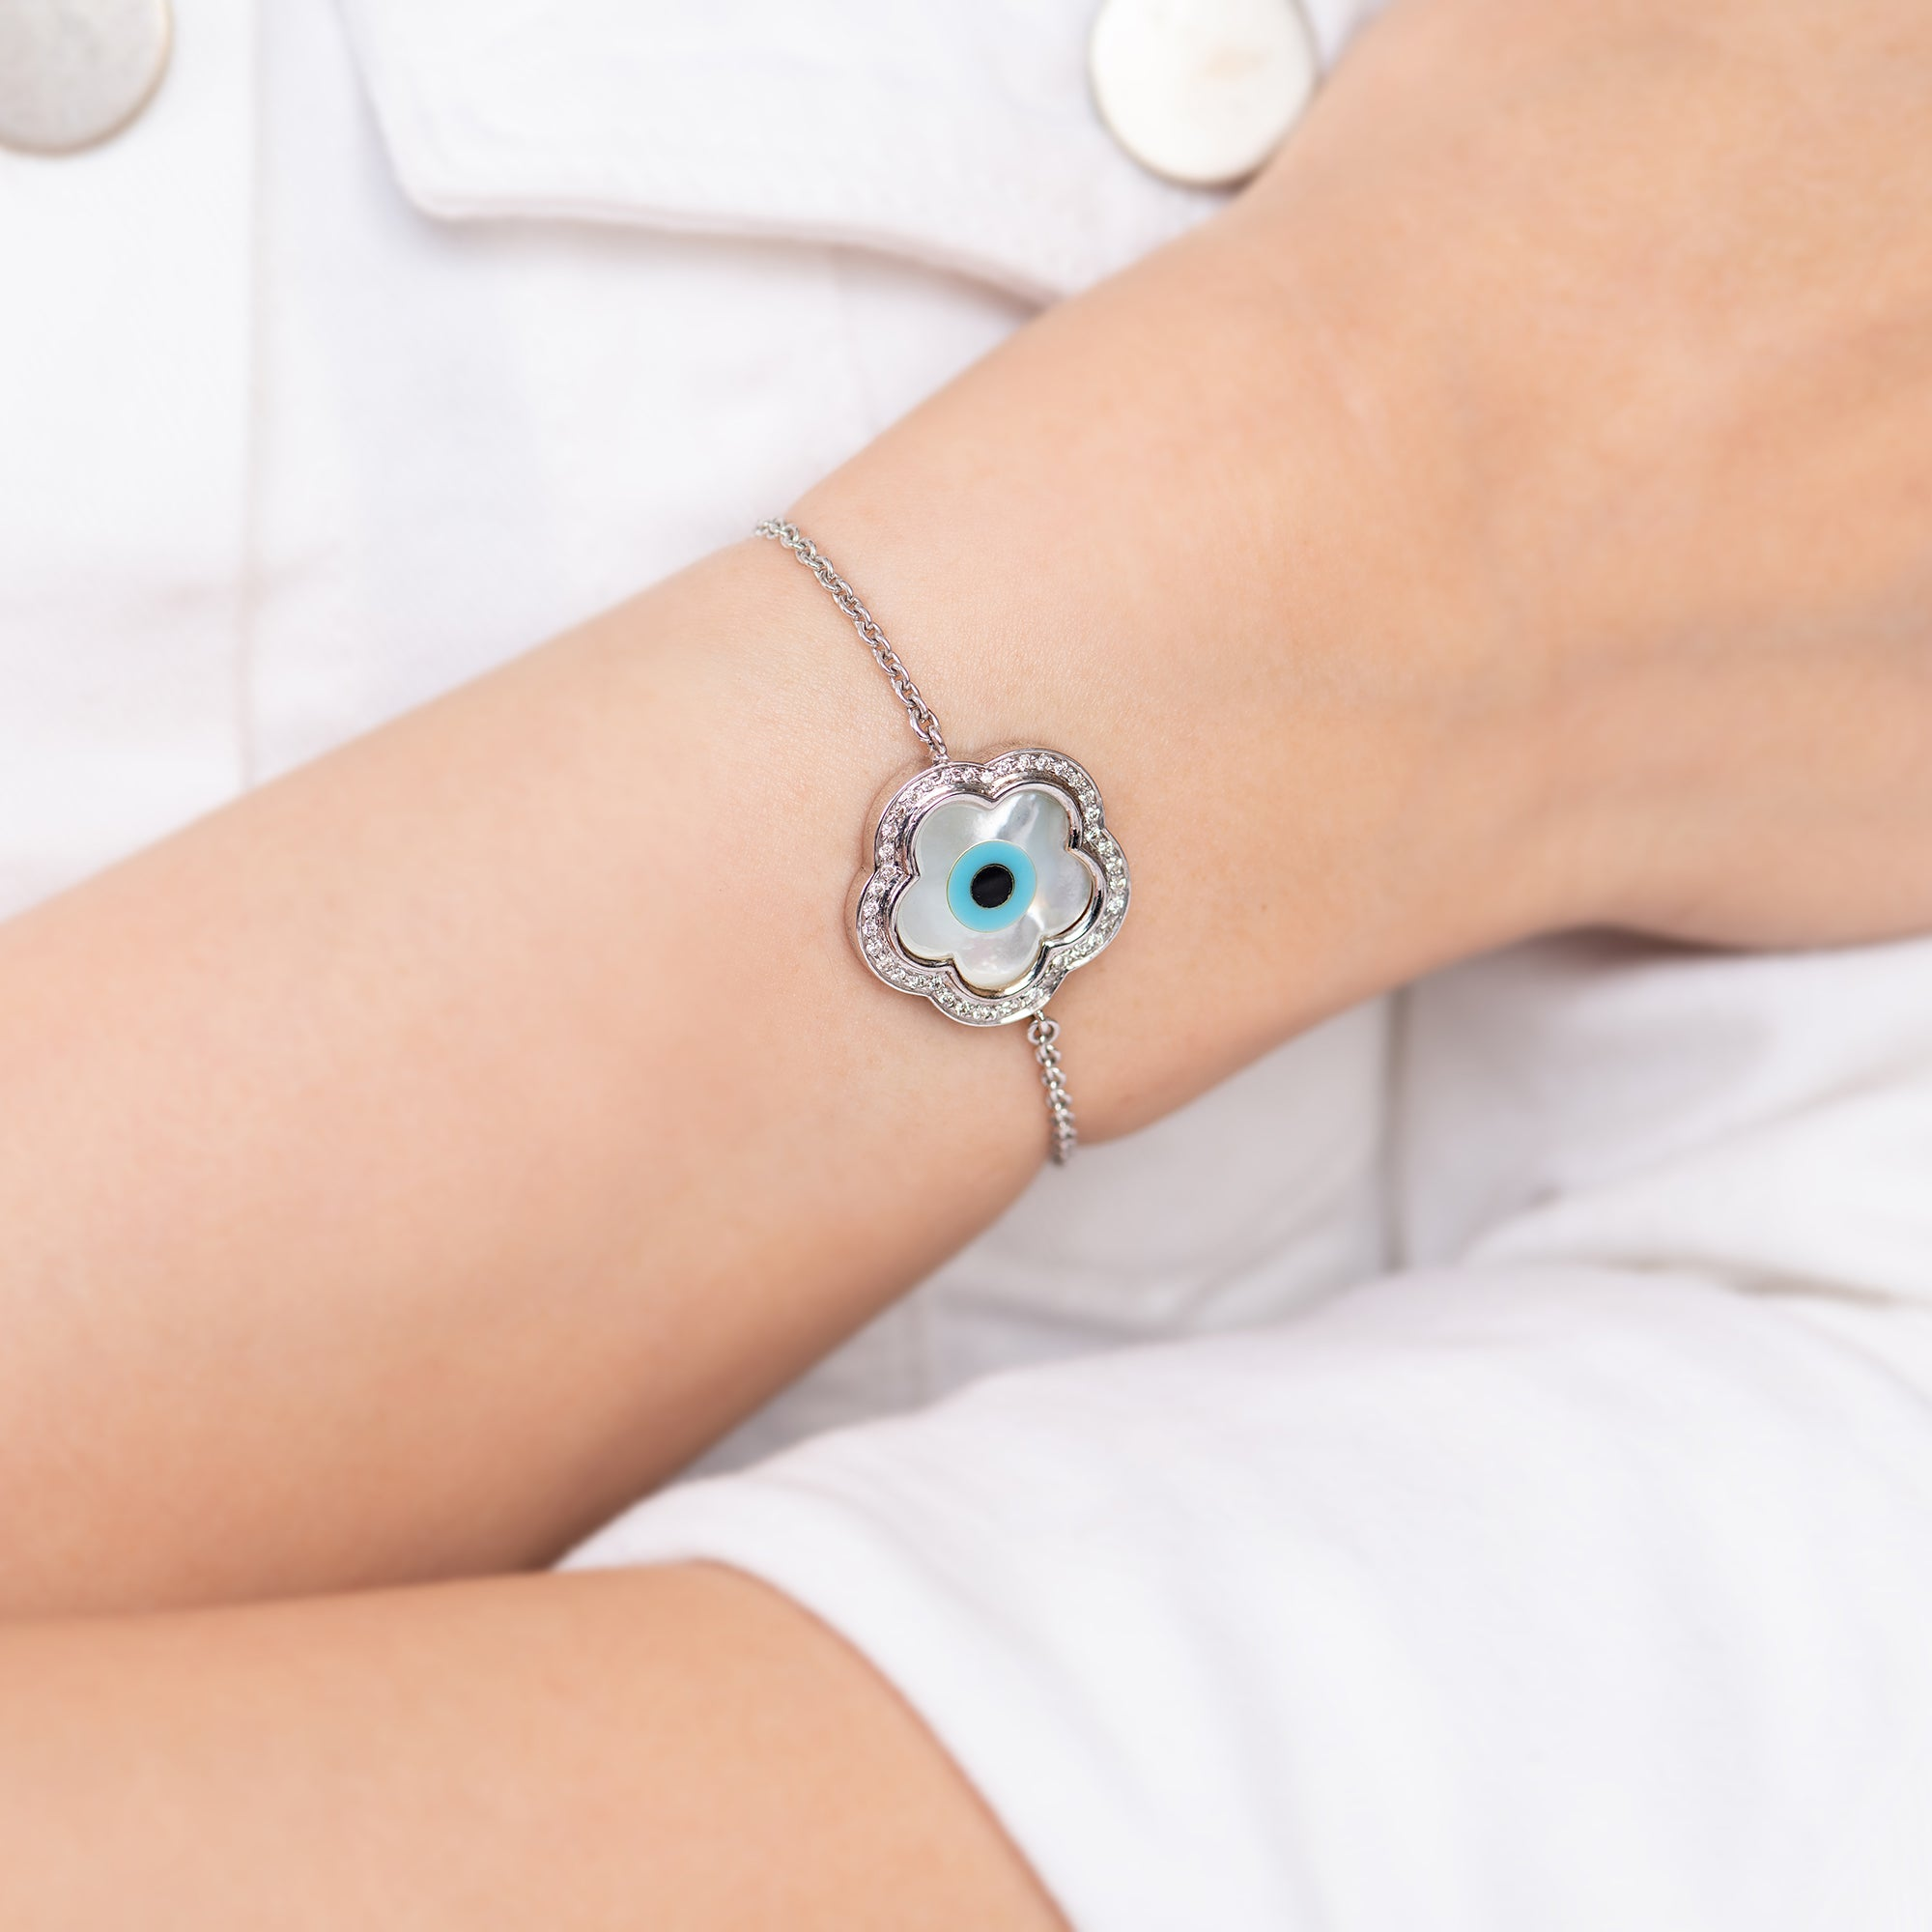 Small Flower Evil Eye Diamond Chain Bracelet